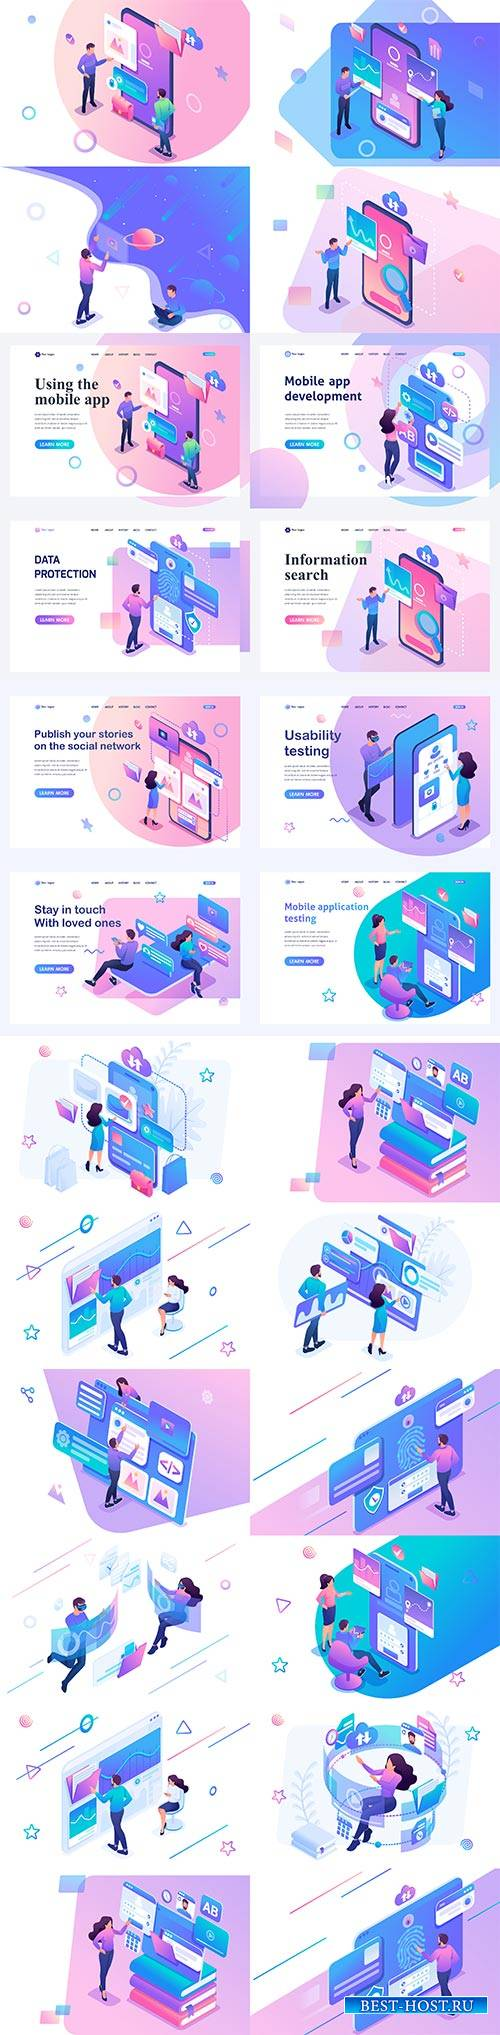 Flat isometric vector 3D concept illustration # 43